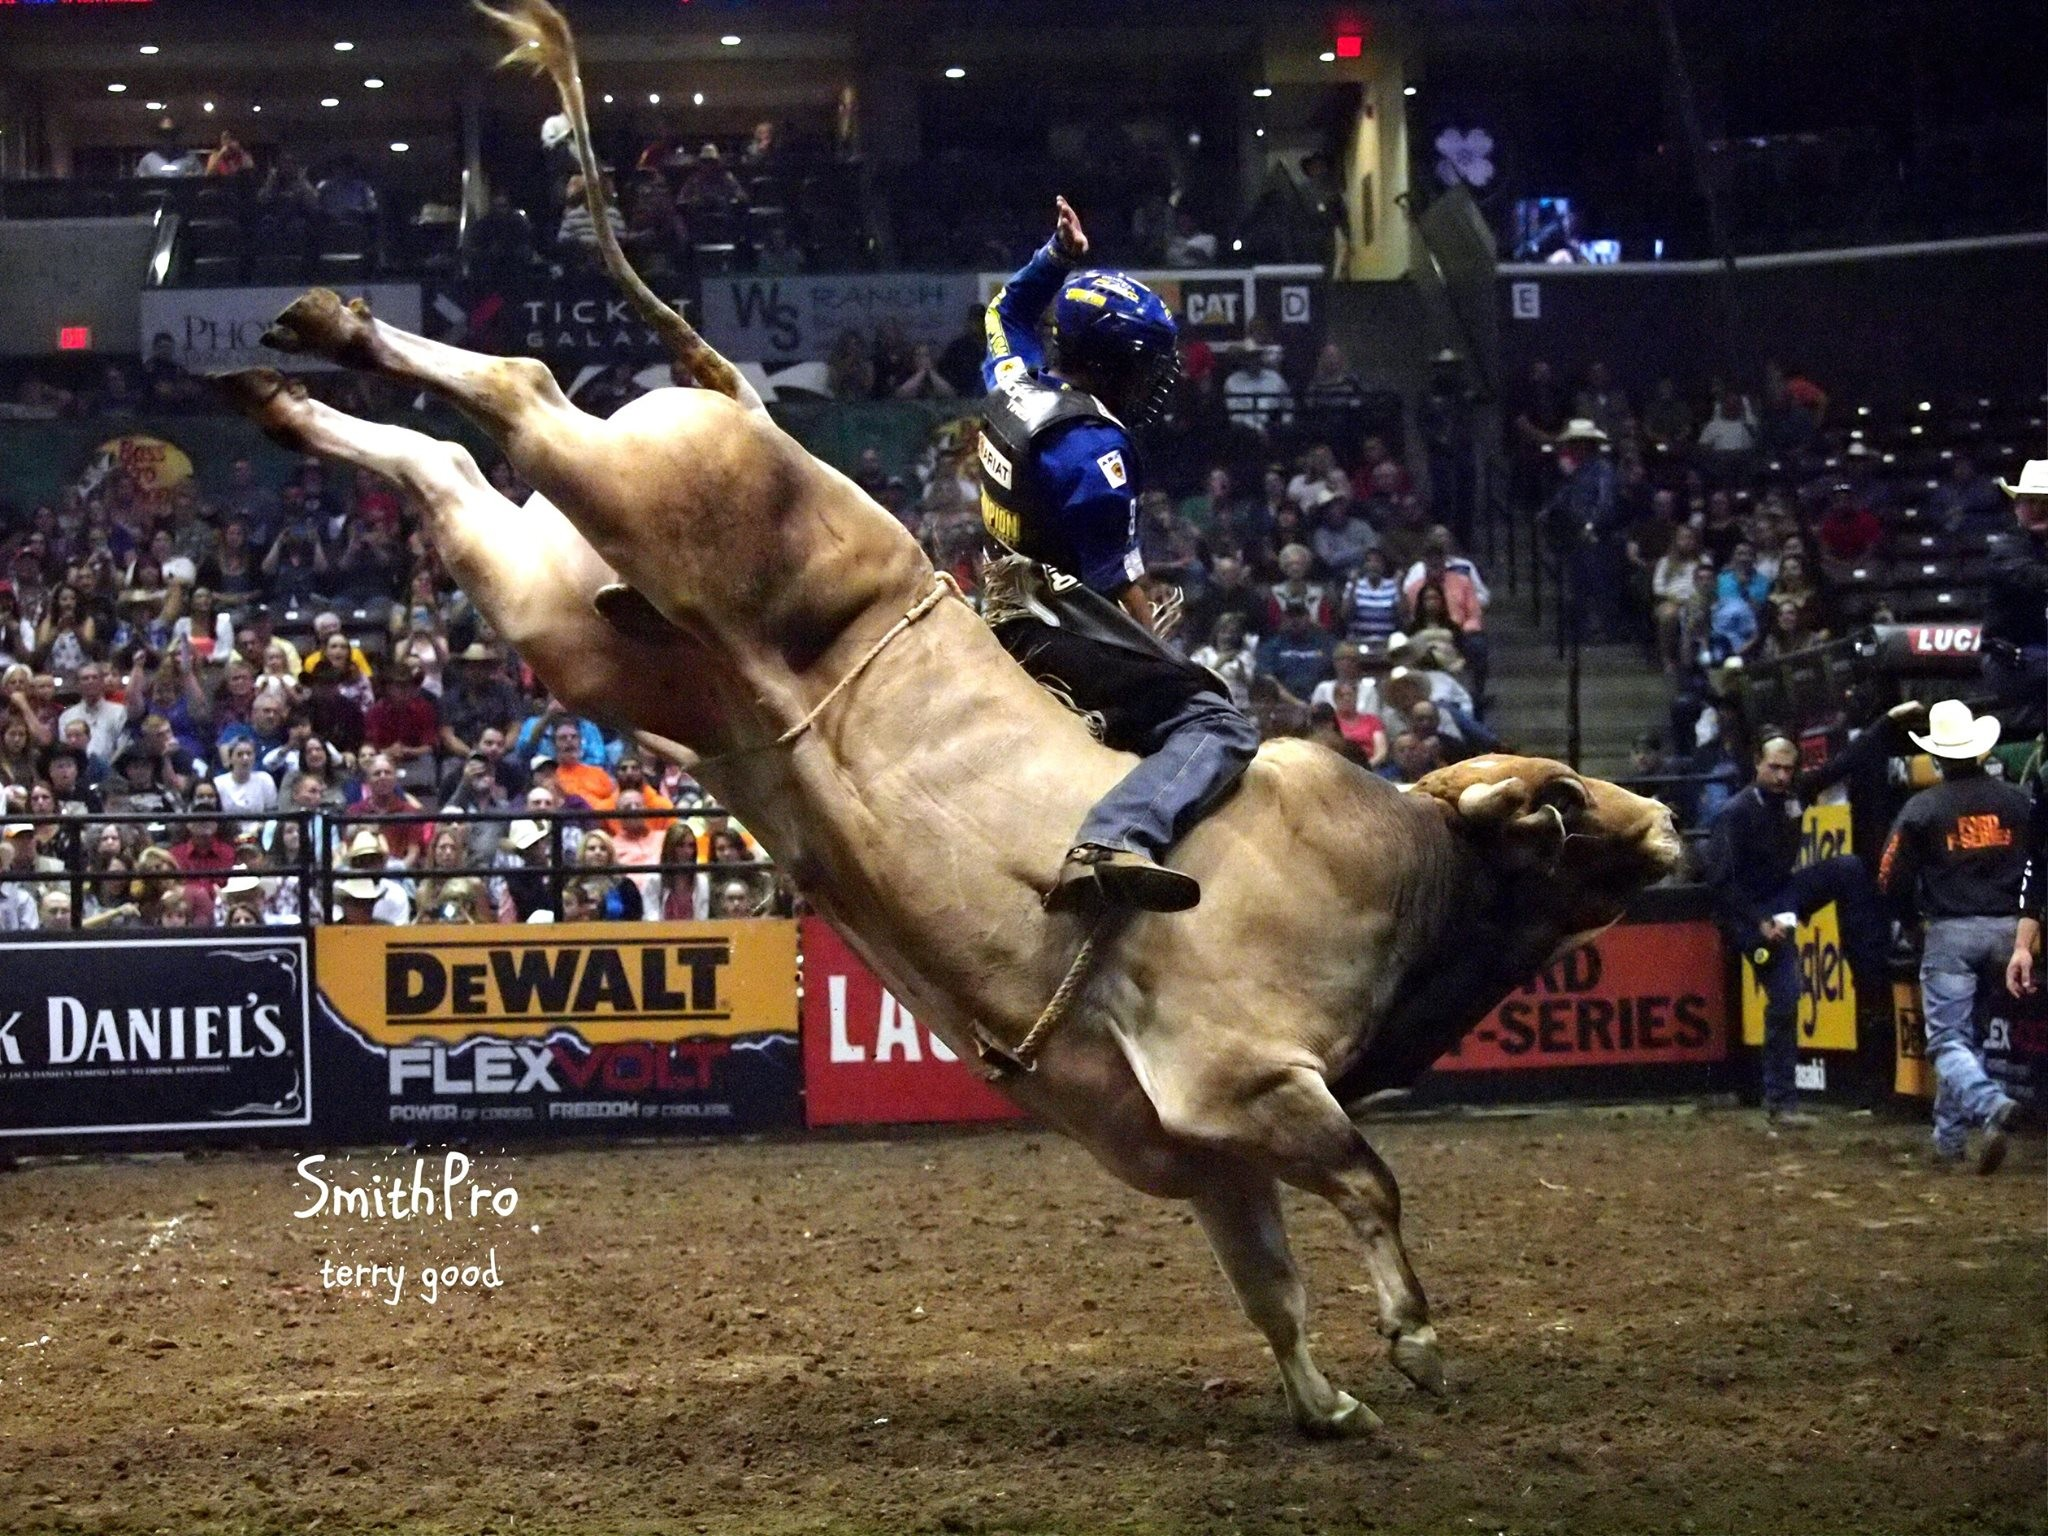 2048x1536 For you bull riding fans, there are many mediums to get yours PBR news  coverage. But, do you know what it actually takes to get that information  from our ...